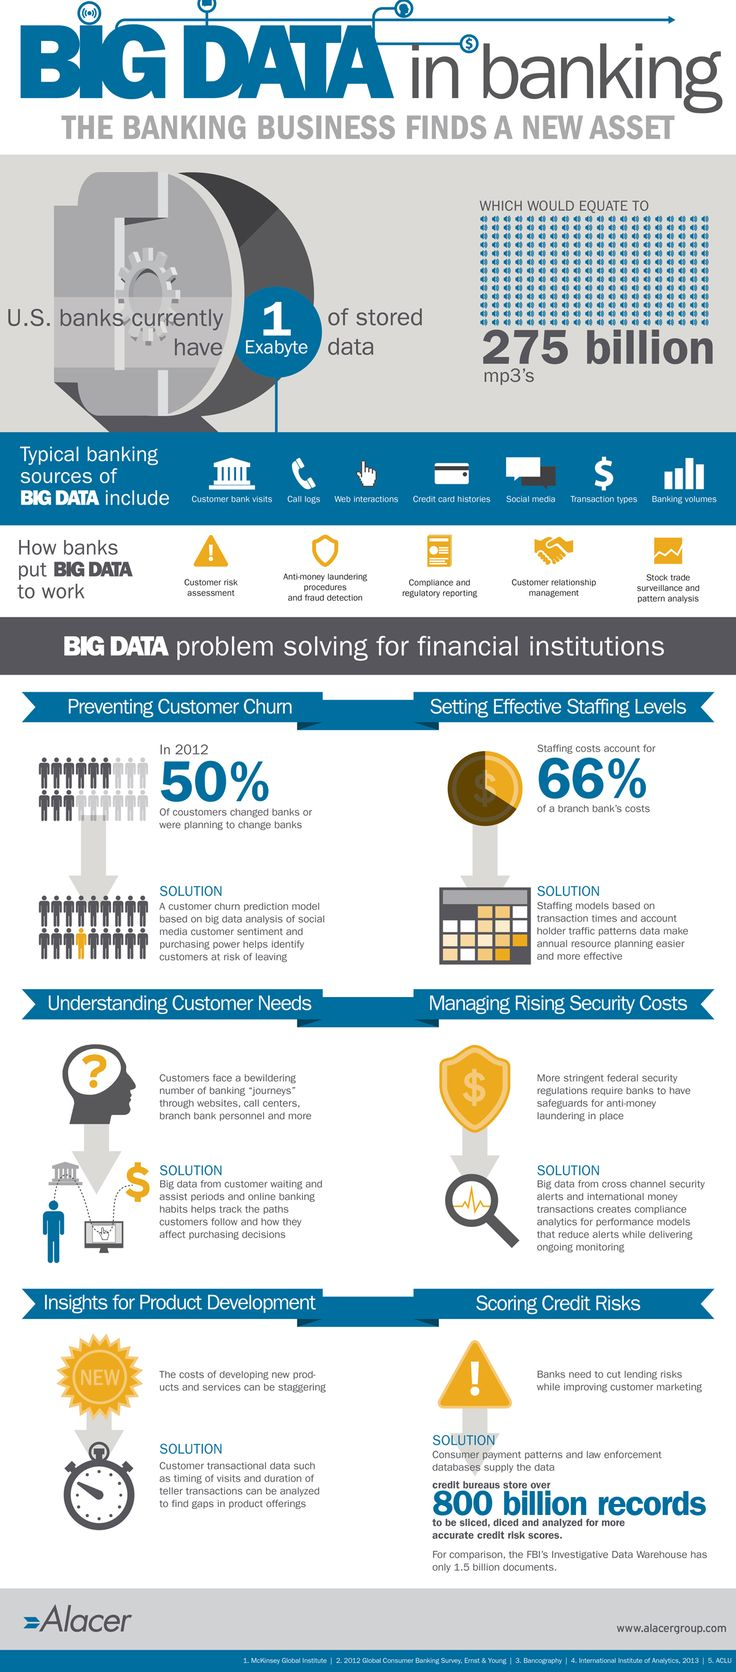 Big data can help meet today's regulatory challenges in the banking and financial services industries.